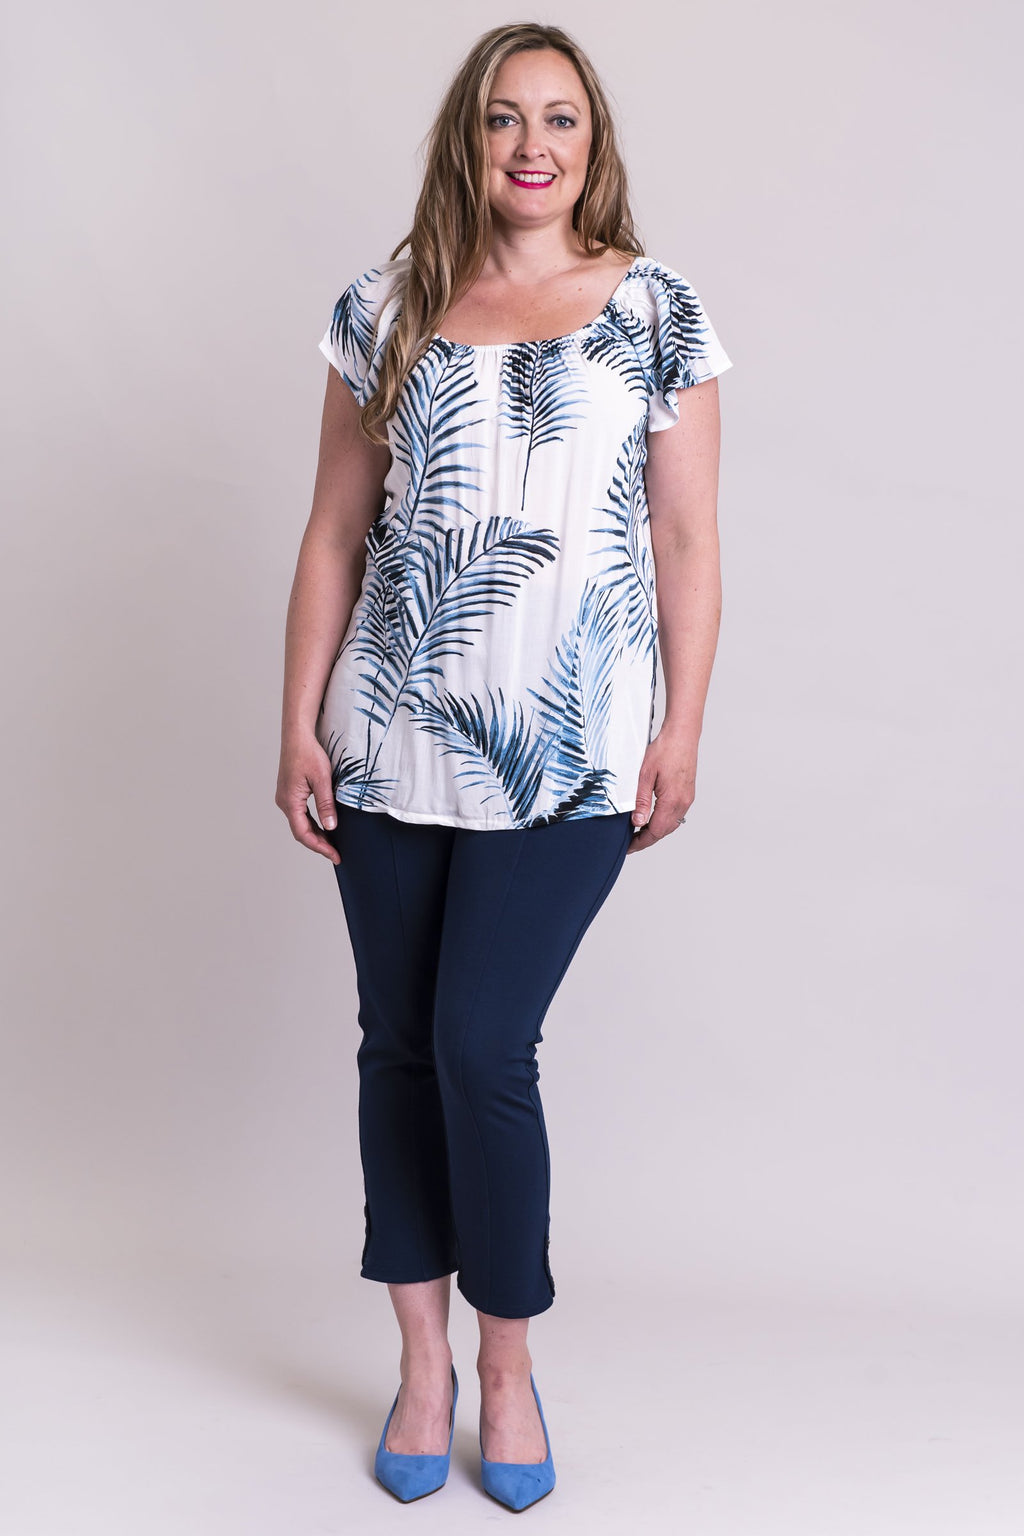 Petra Top, Palm Leaf, Batik Art - Blue Sky Clothing Co